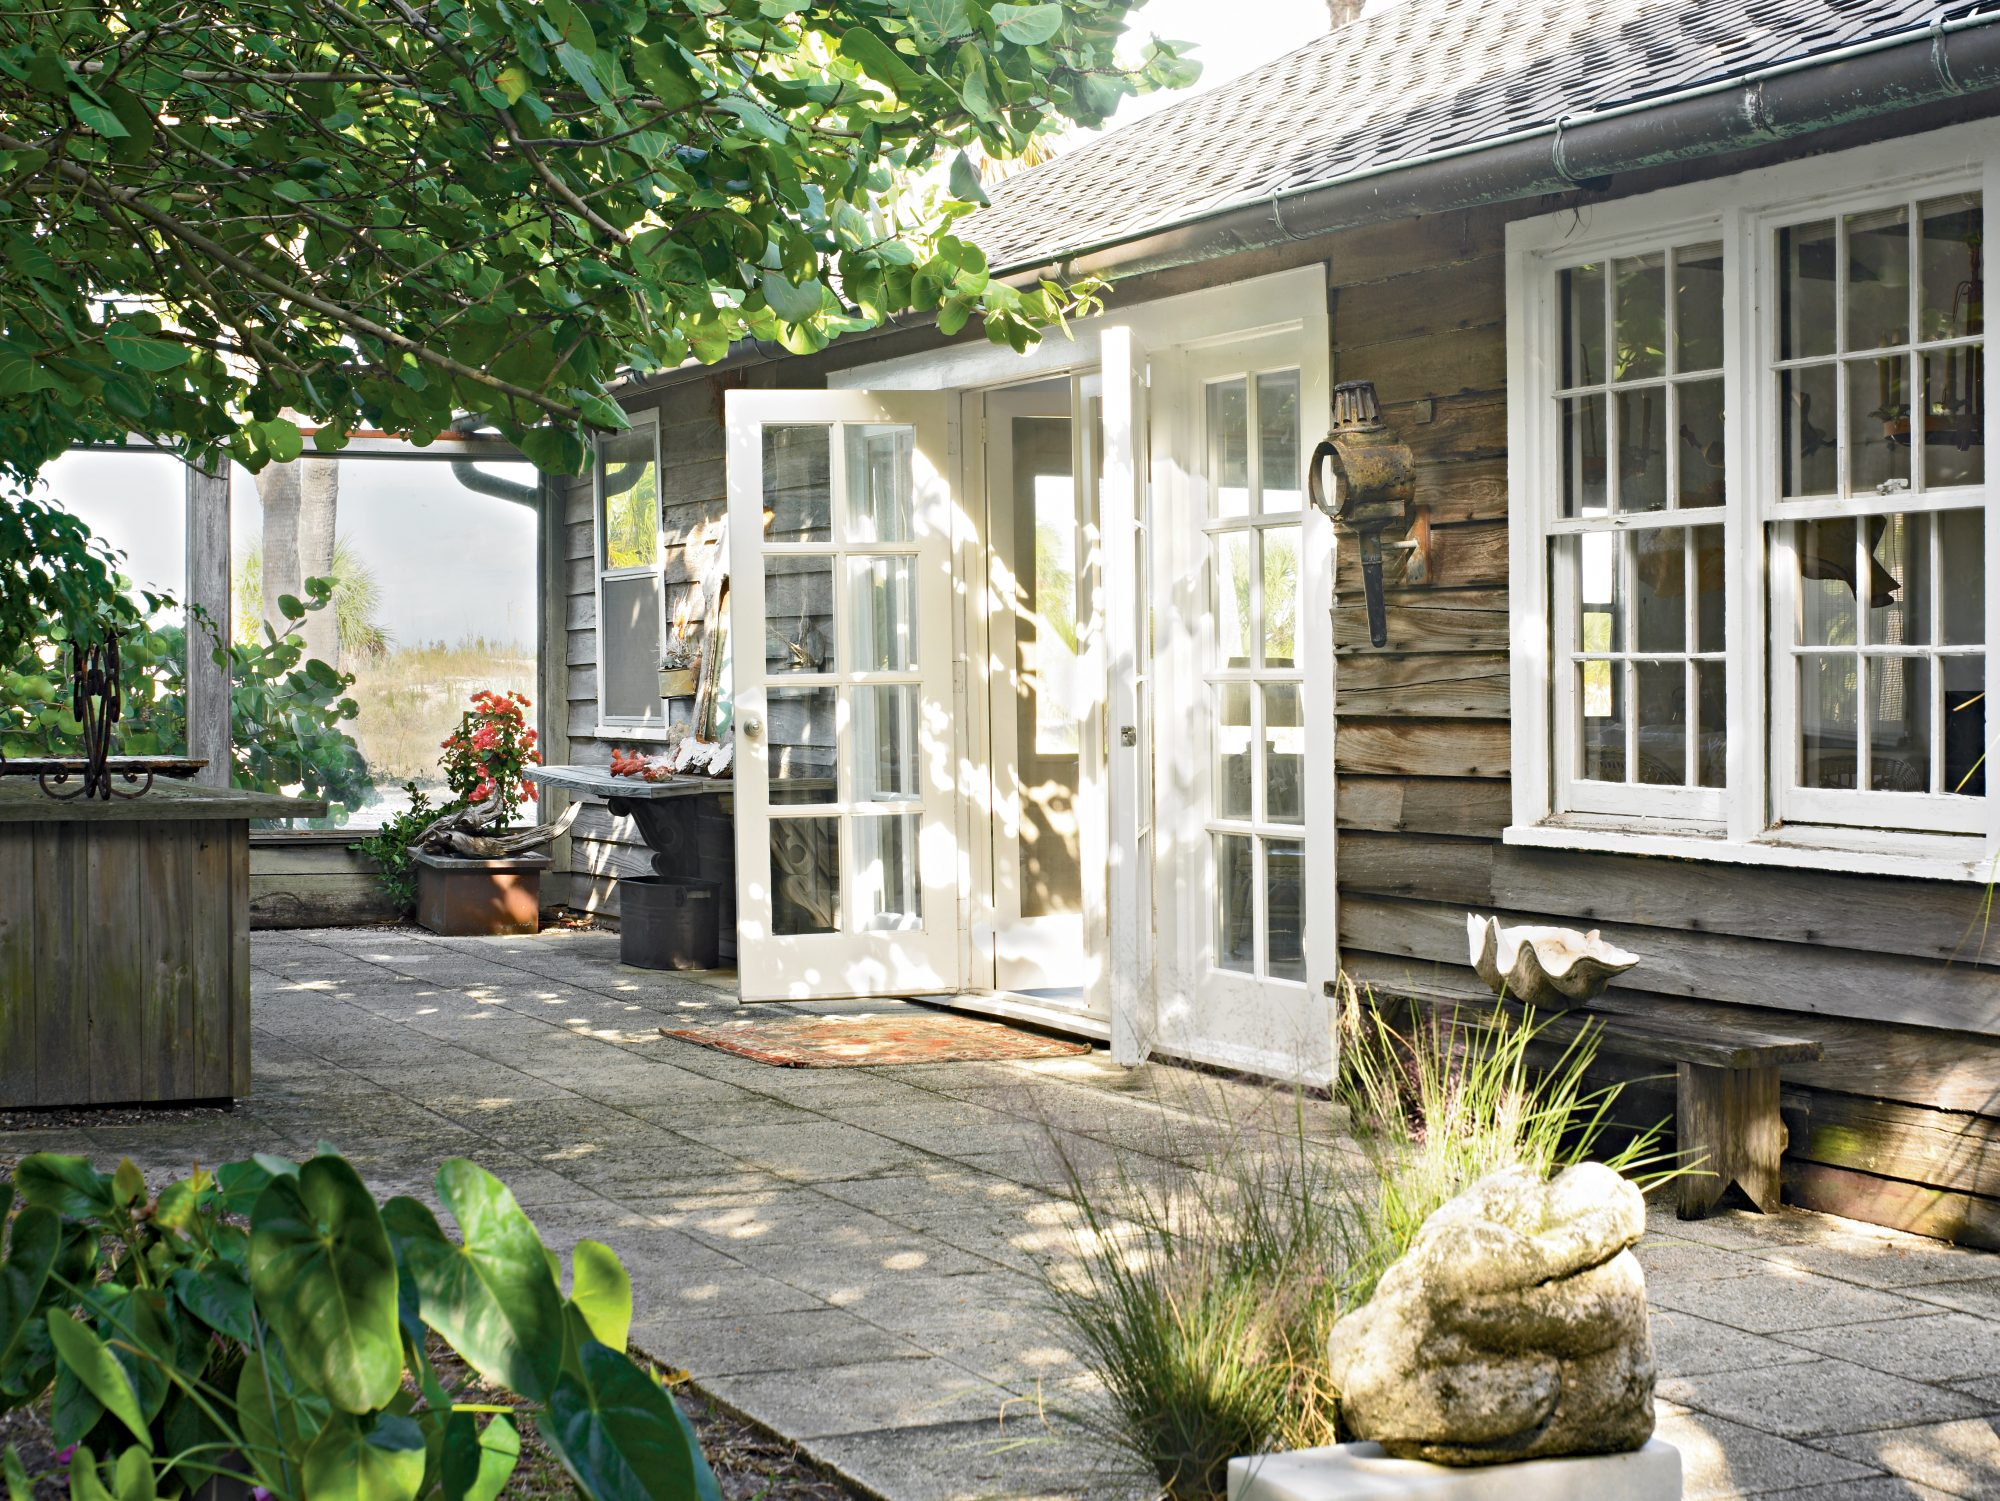 The simple stone slab patio is shaded by large trees and is a lowkey spot for enjoying coastal breezes. The smart white trim on the French doors and windows creates a striking contrast against the weathered wood siding.